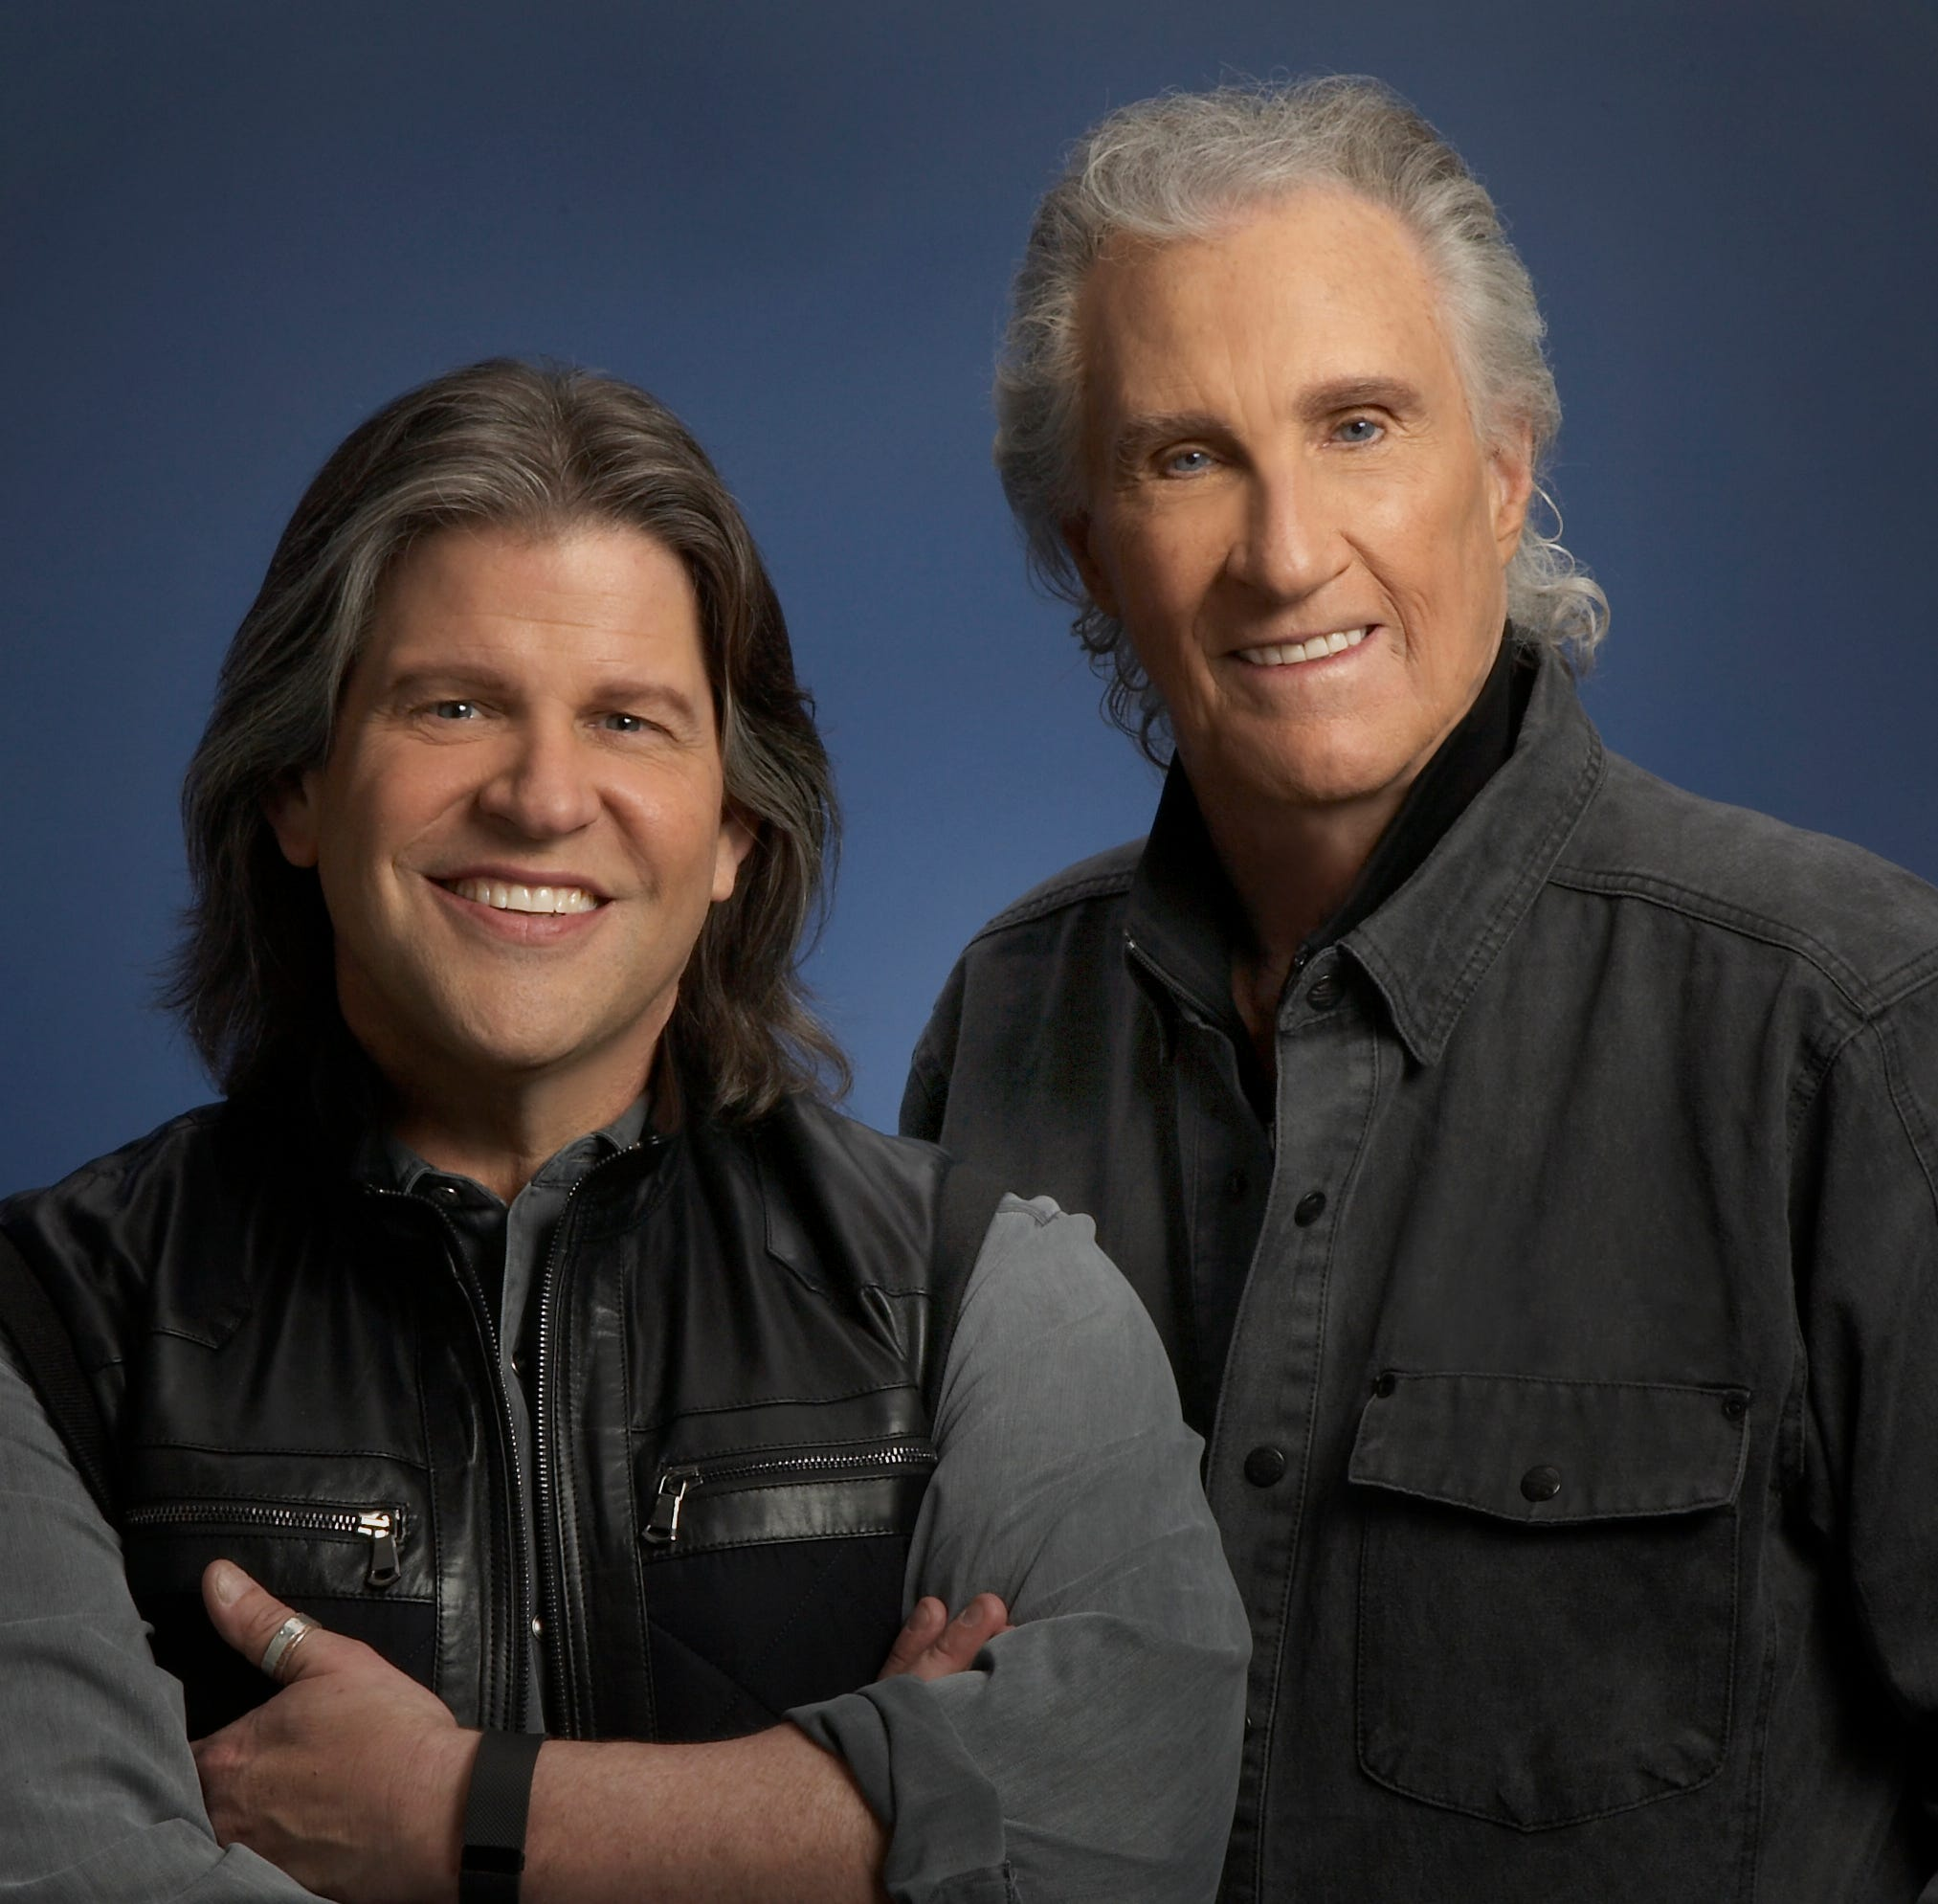 Righteous Brothers in Fort Myers: Singer Bill Medley talks 80s movies, Unchained Melody, etc.